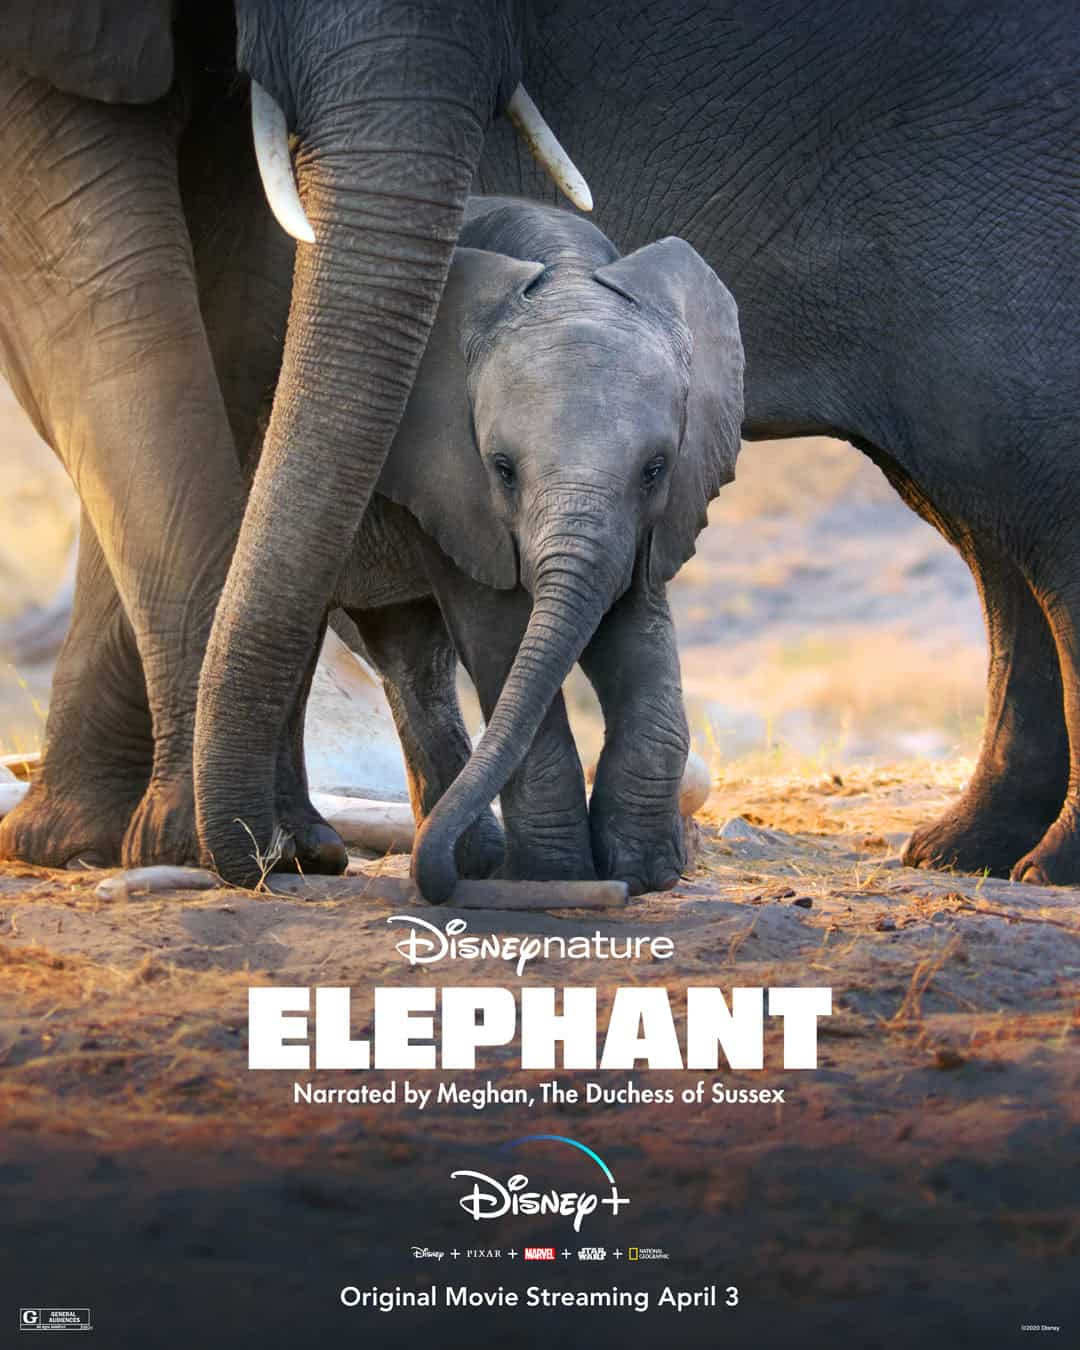 Disney+ Honours Earth Month With New Disneynature Films